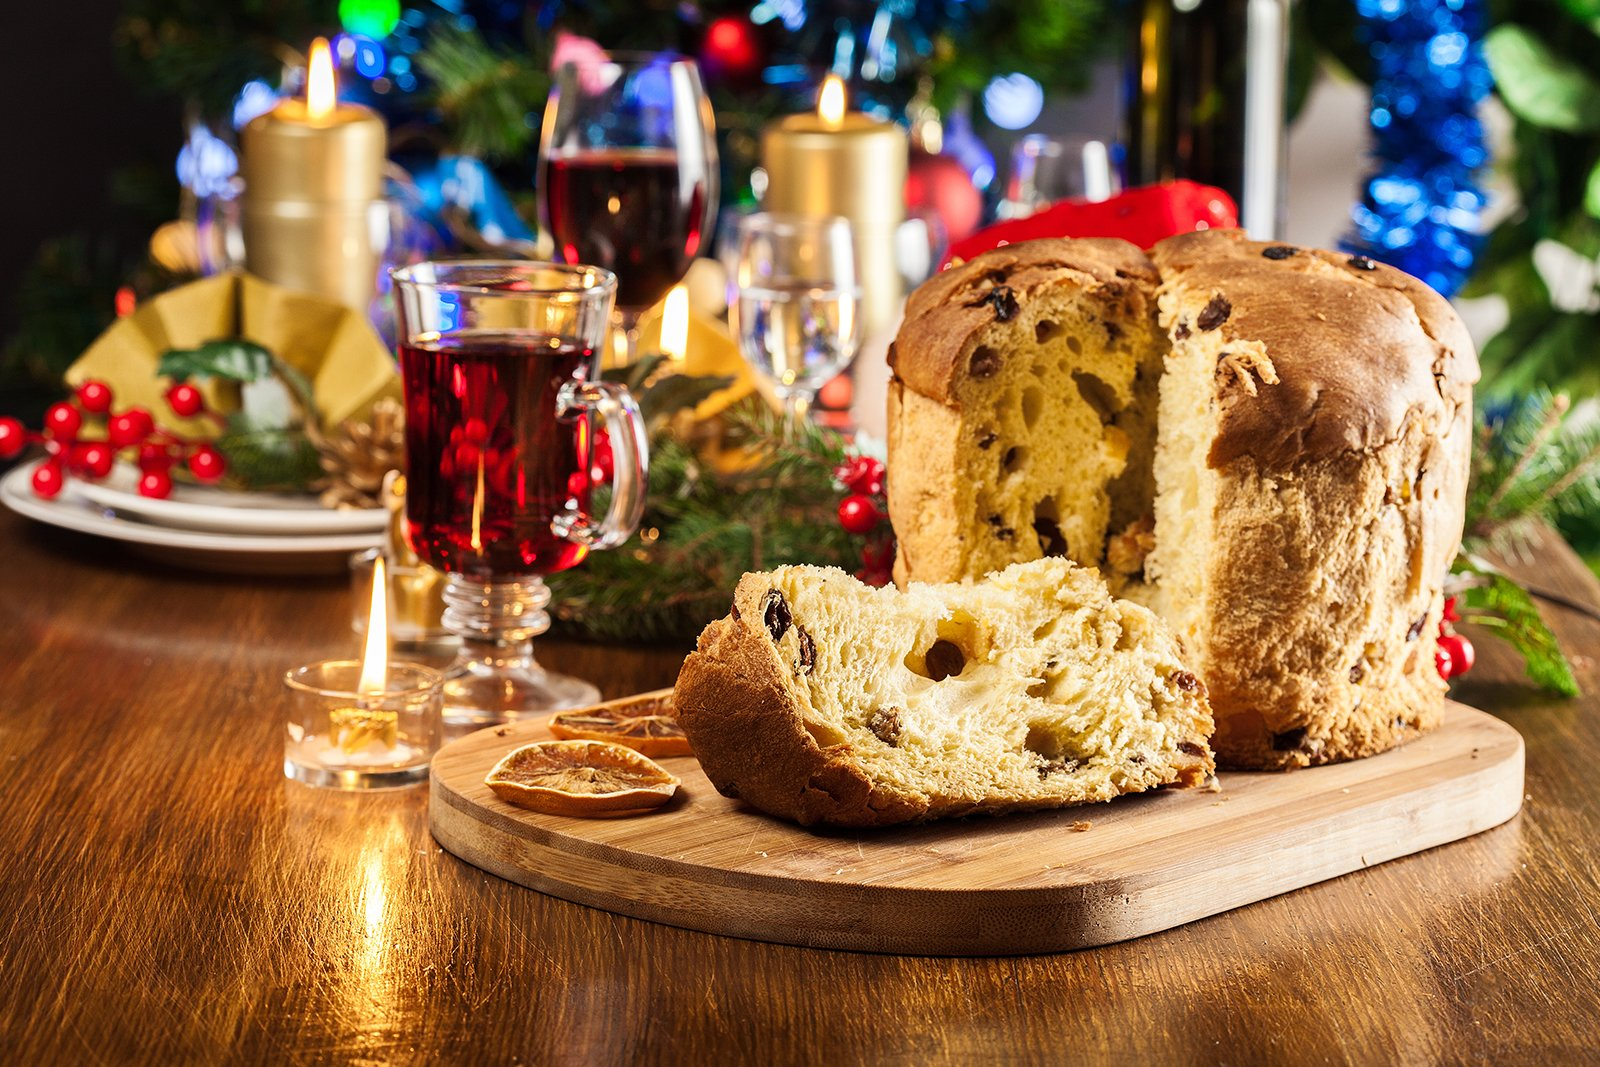 Christmas panettone cake with raisins, fruit and wine